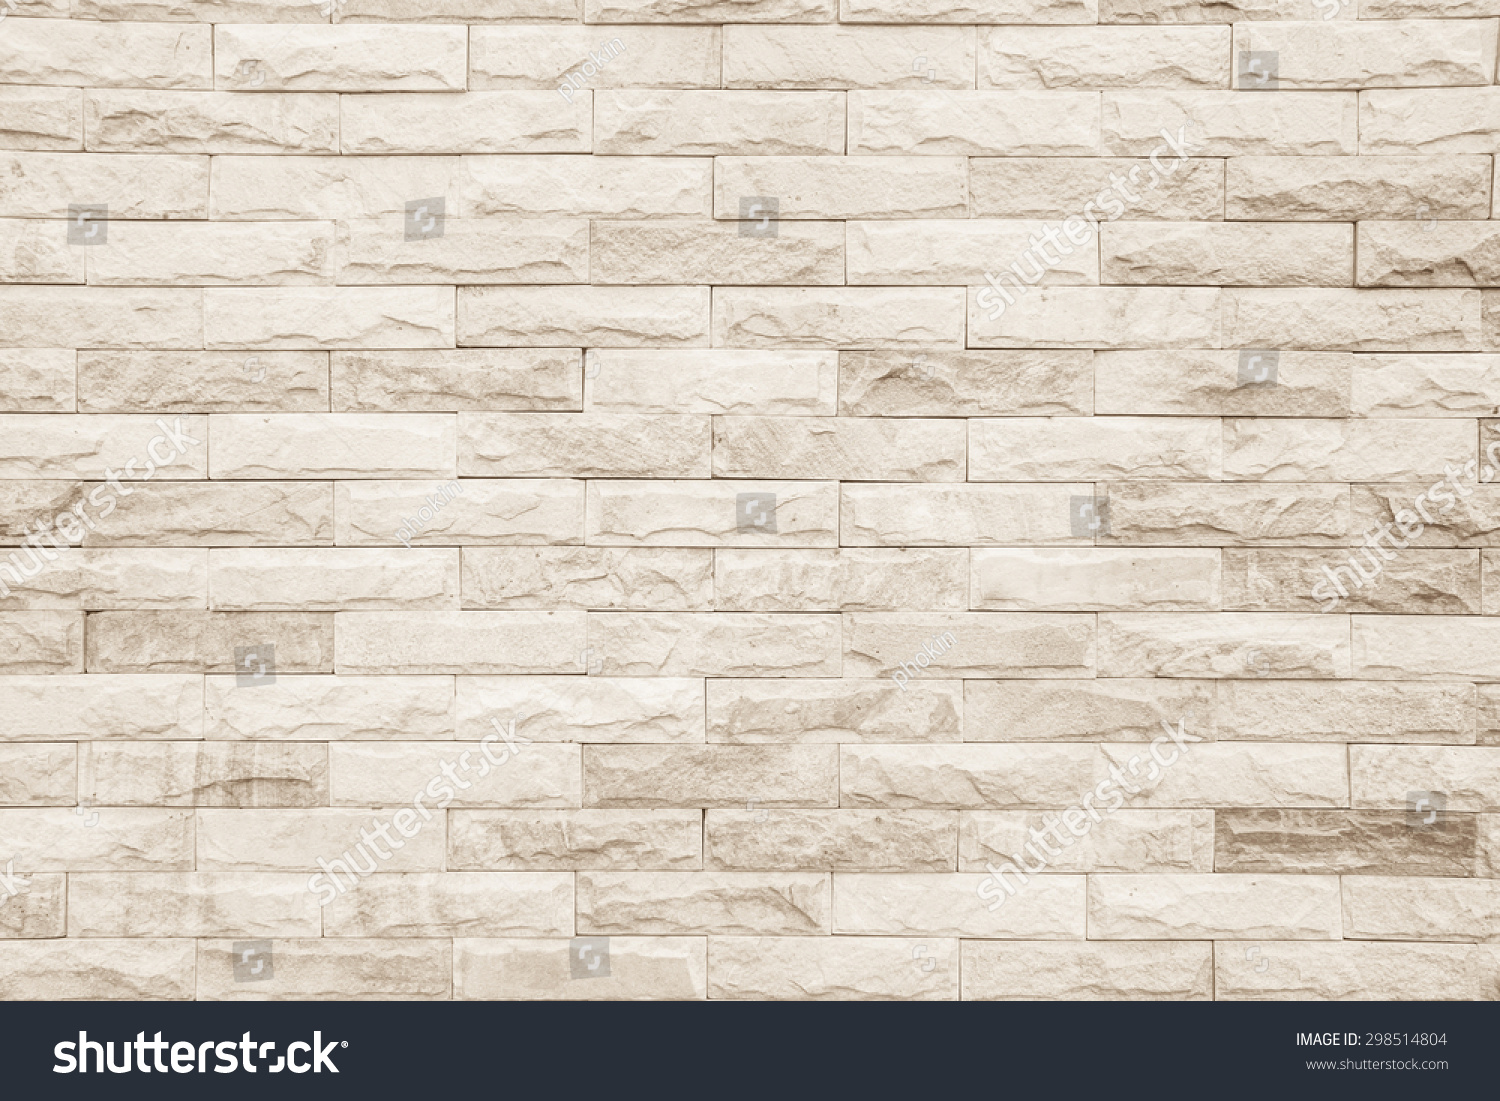 black white brick wall texture background stock photo 298514804 shutterstock. Black Bedroom Furniture Sets. Home Design Ideas